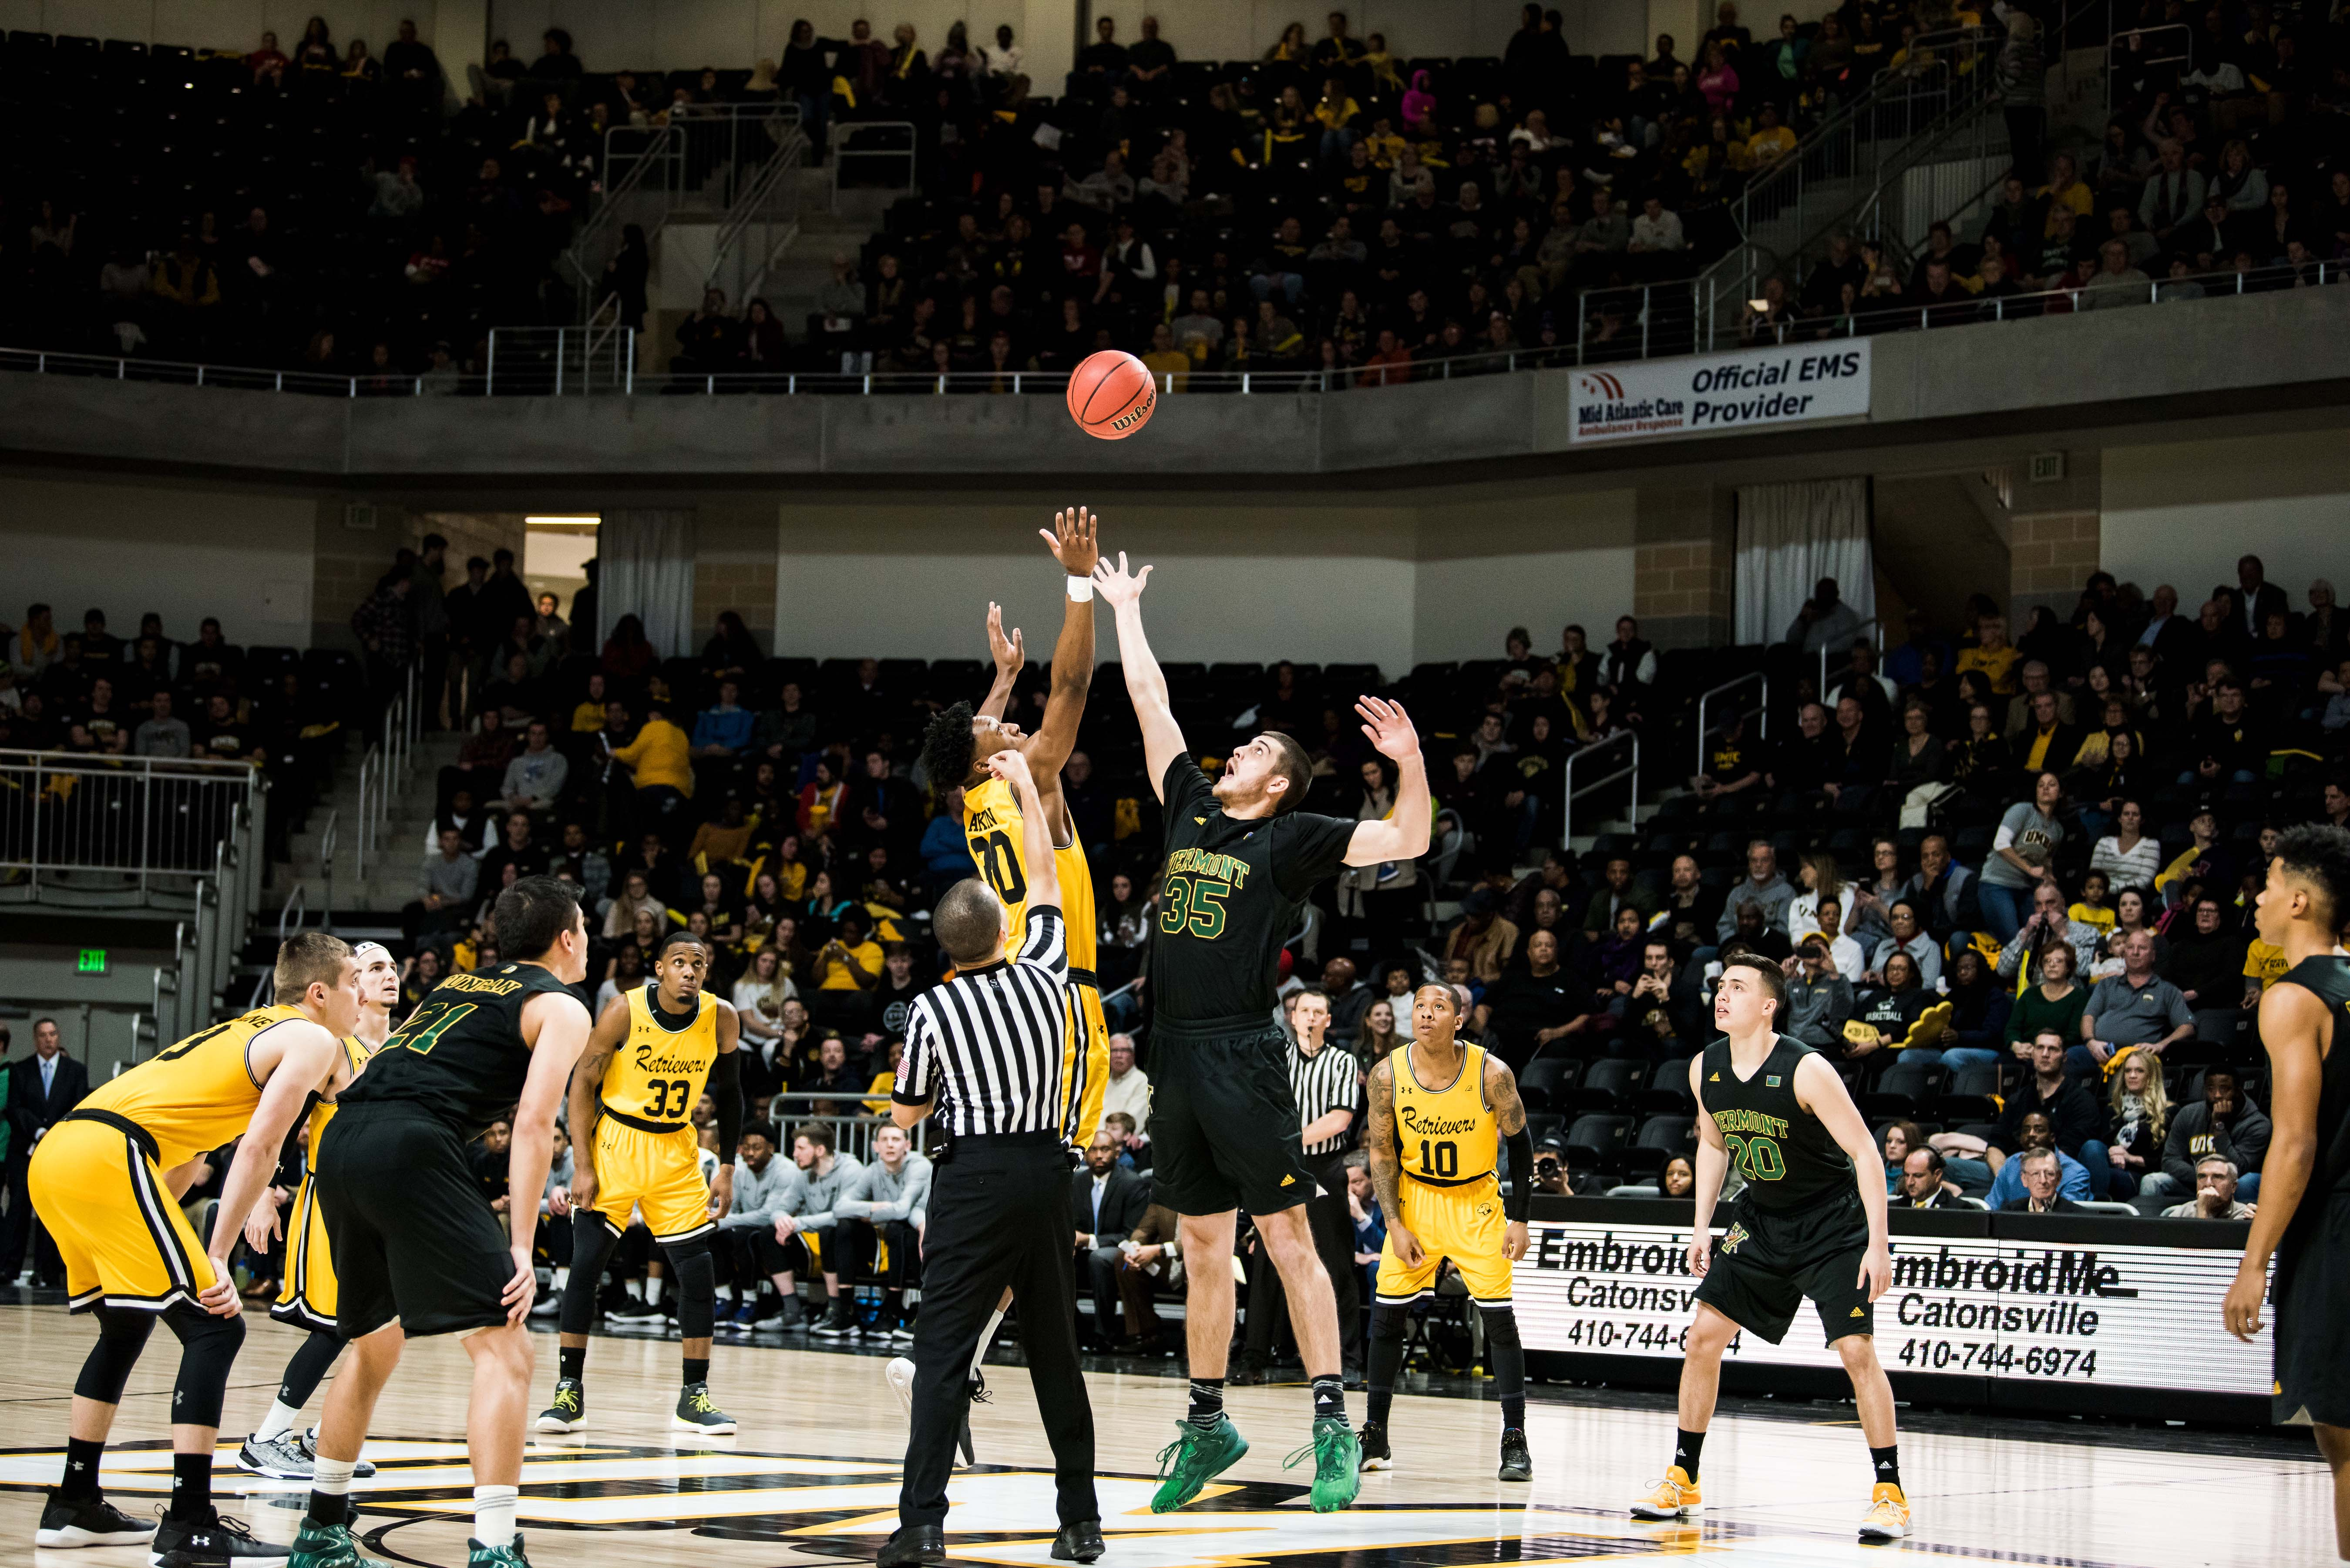 Mens basketball game for event center opening